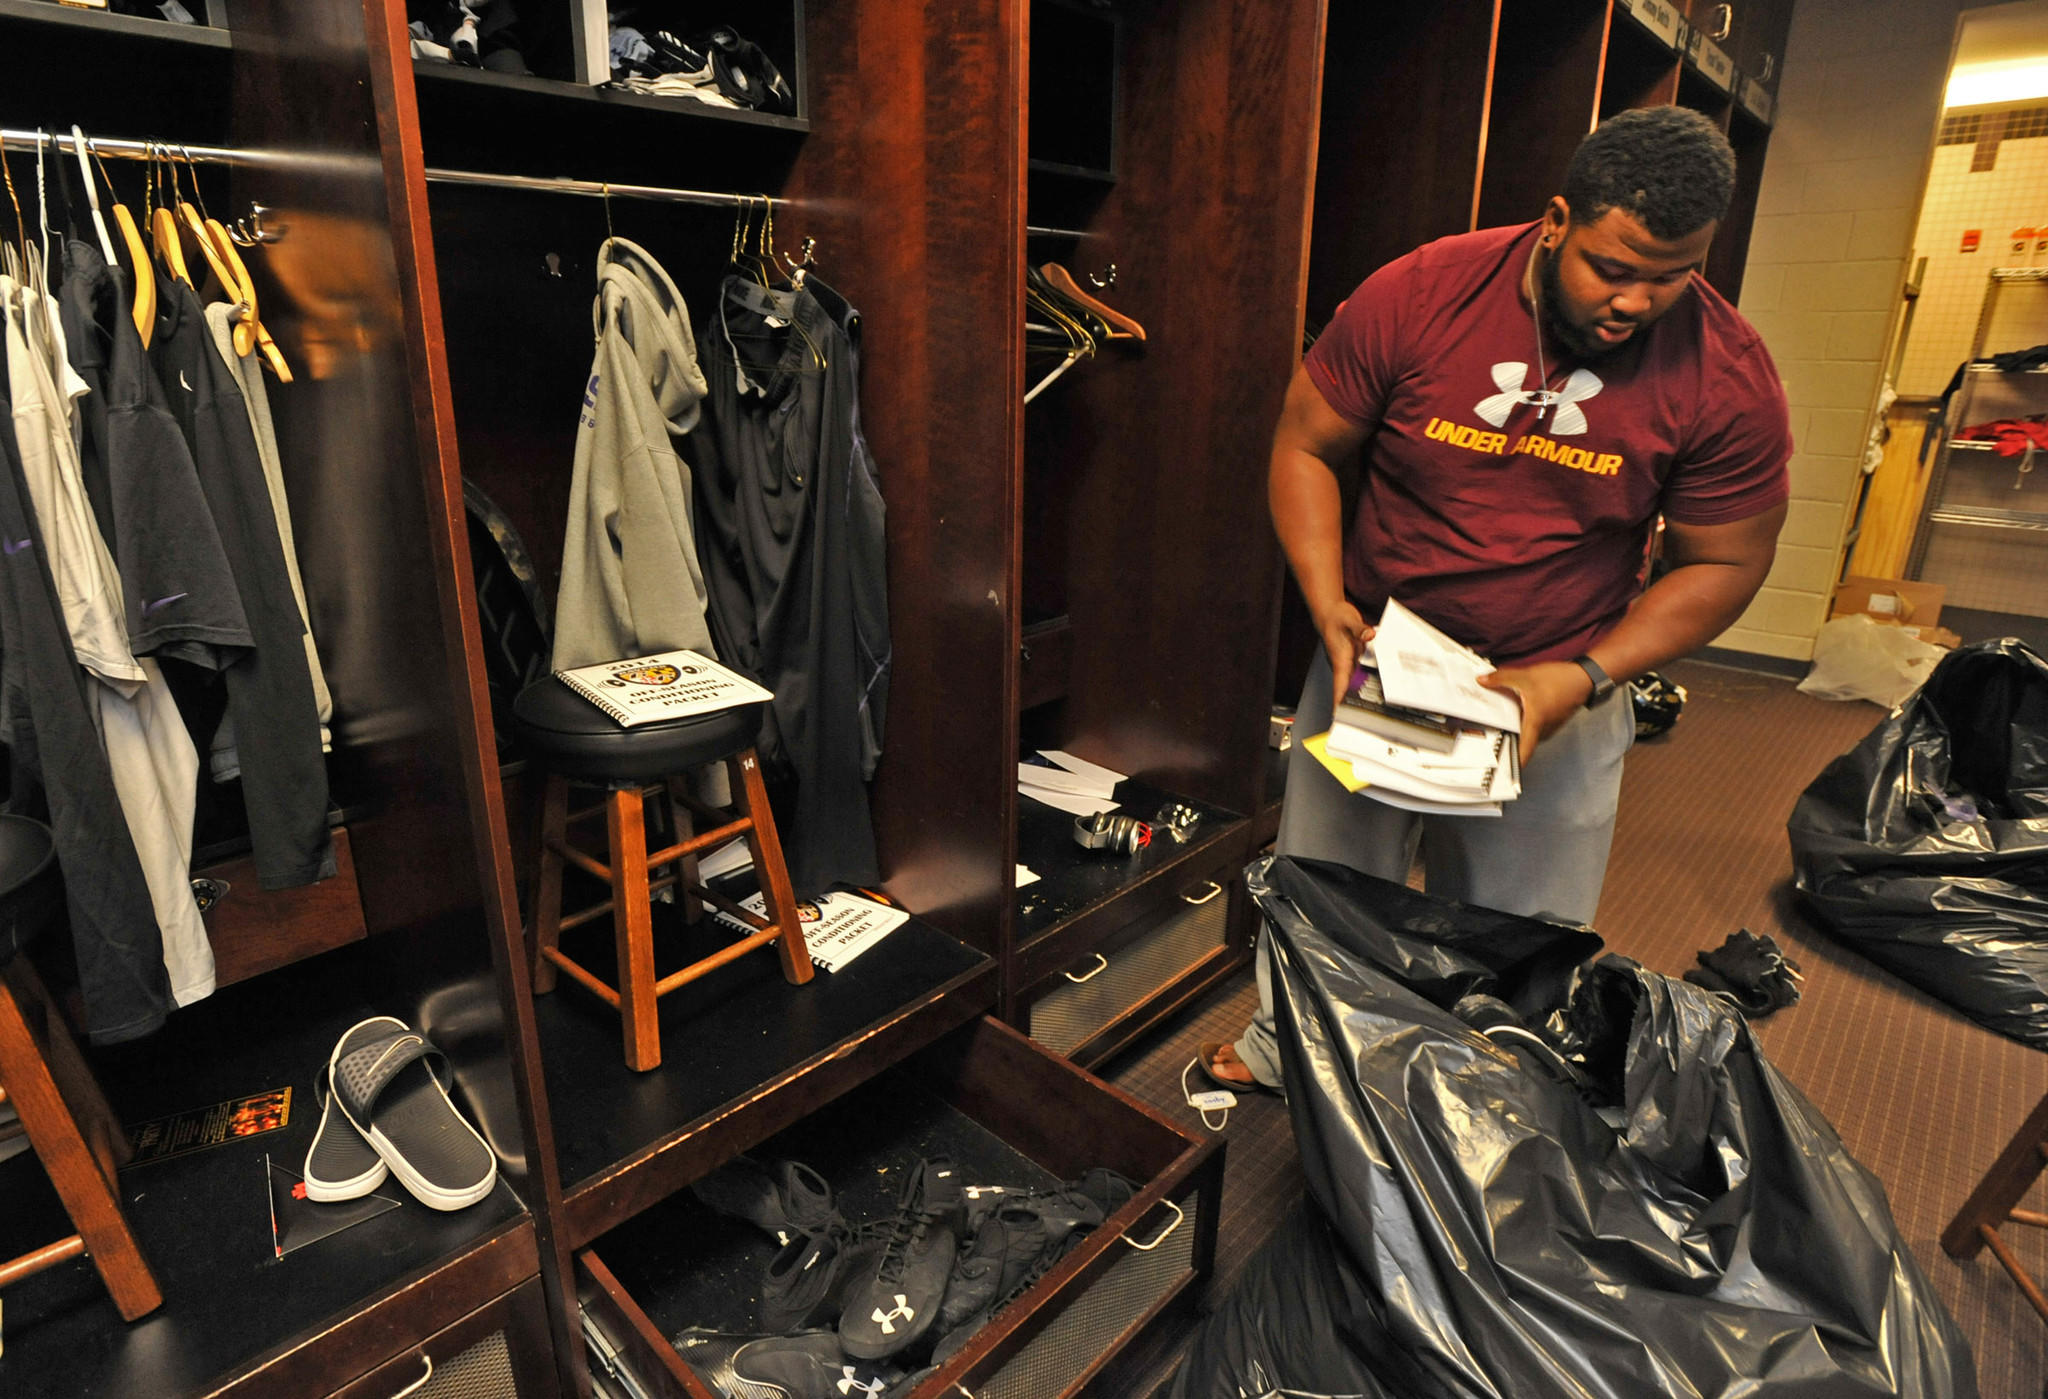 Brandon Williams packs up his belongings the day after the Ravens' regular season ended in a loss to the Cincinnati Bengals.